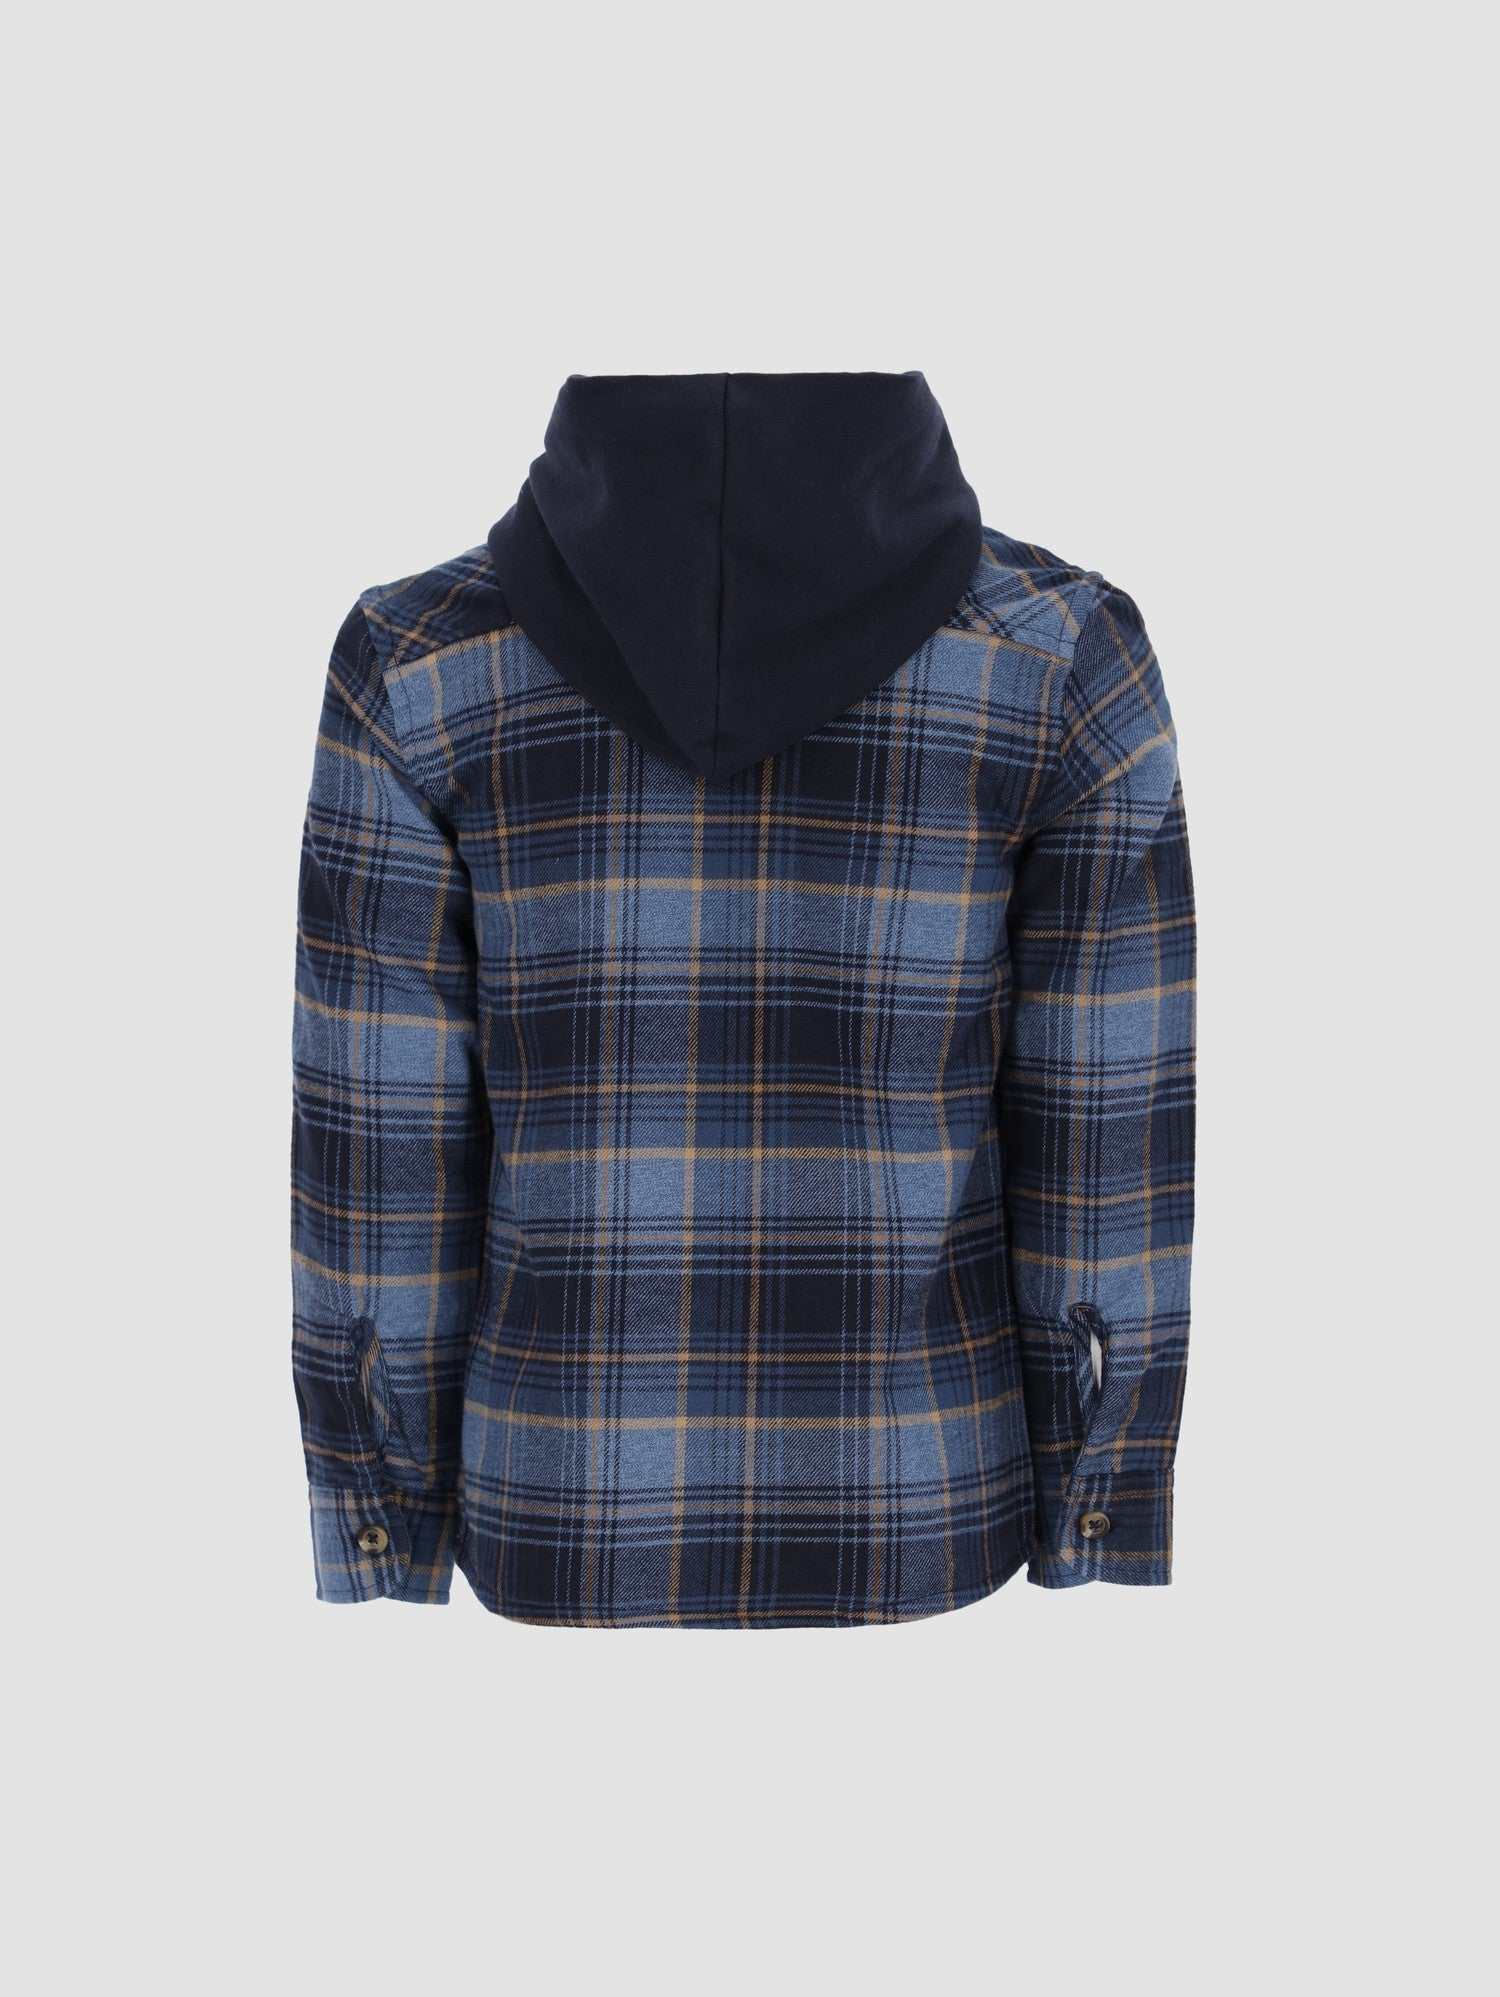 Kids Boys Plaid Shirt with Hood